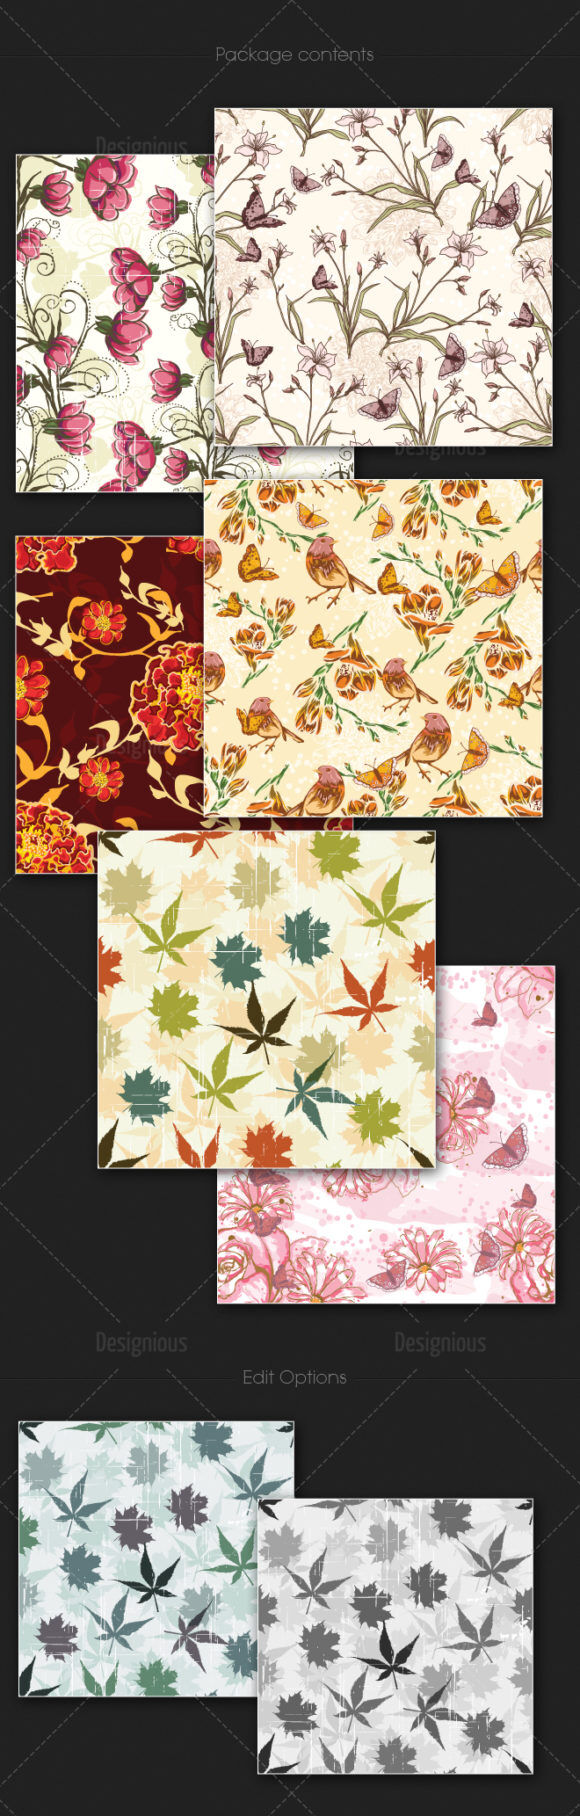 Seamless Patterns Vector Pack 115 Vector Patterns [tag]